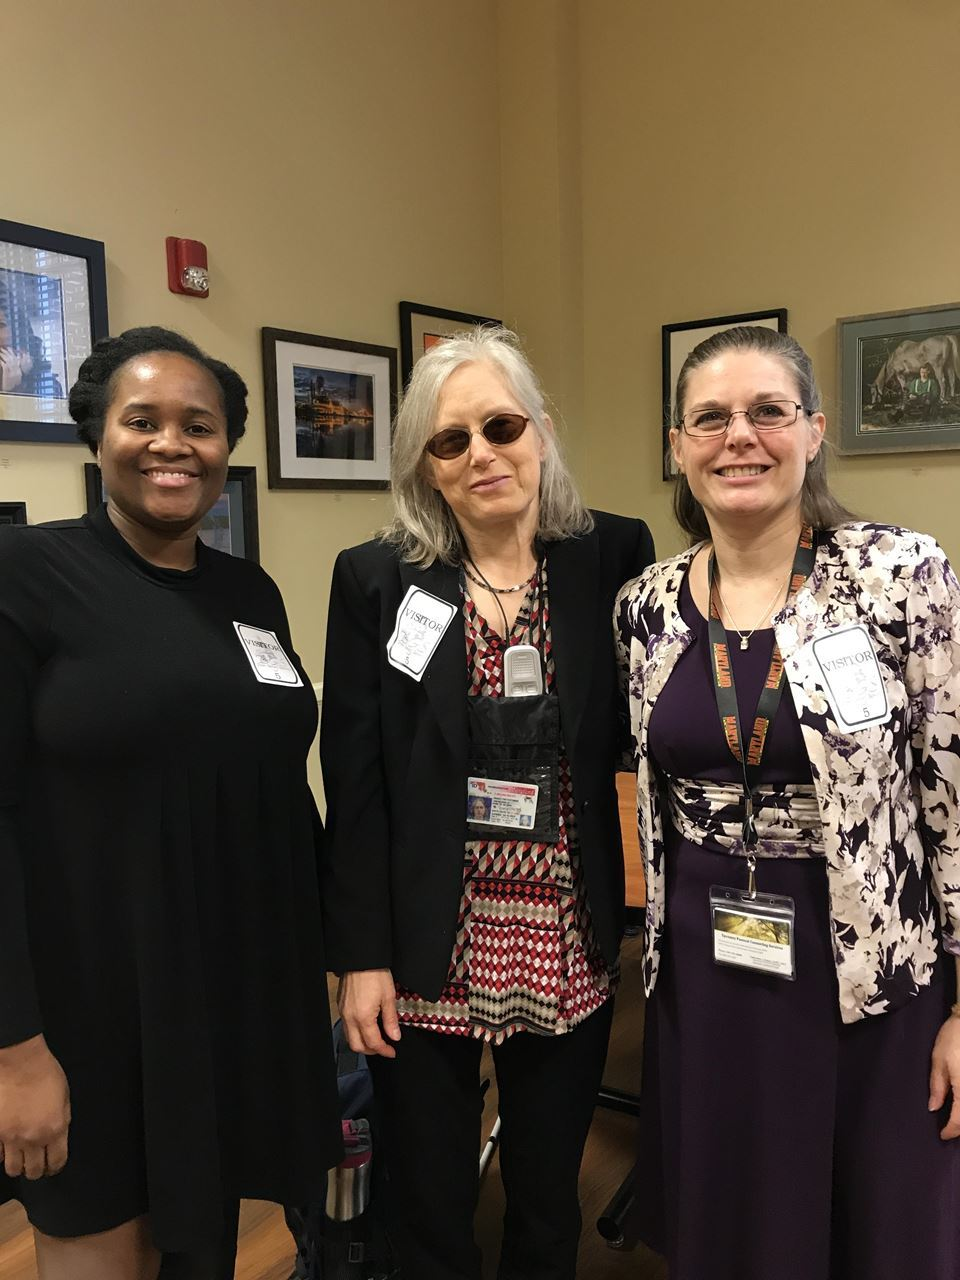 President-Elect Dr. Ajita Robinson, Advocacy Chair Ms. Janice Toothman, and President Cathie Eaton